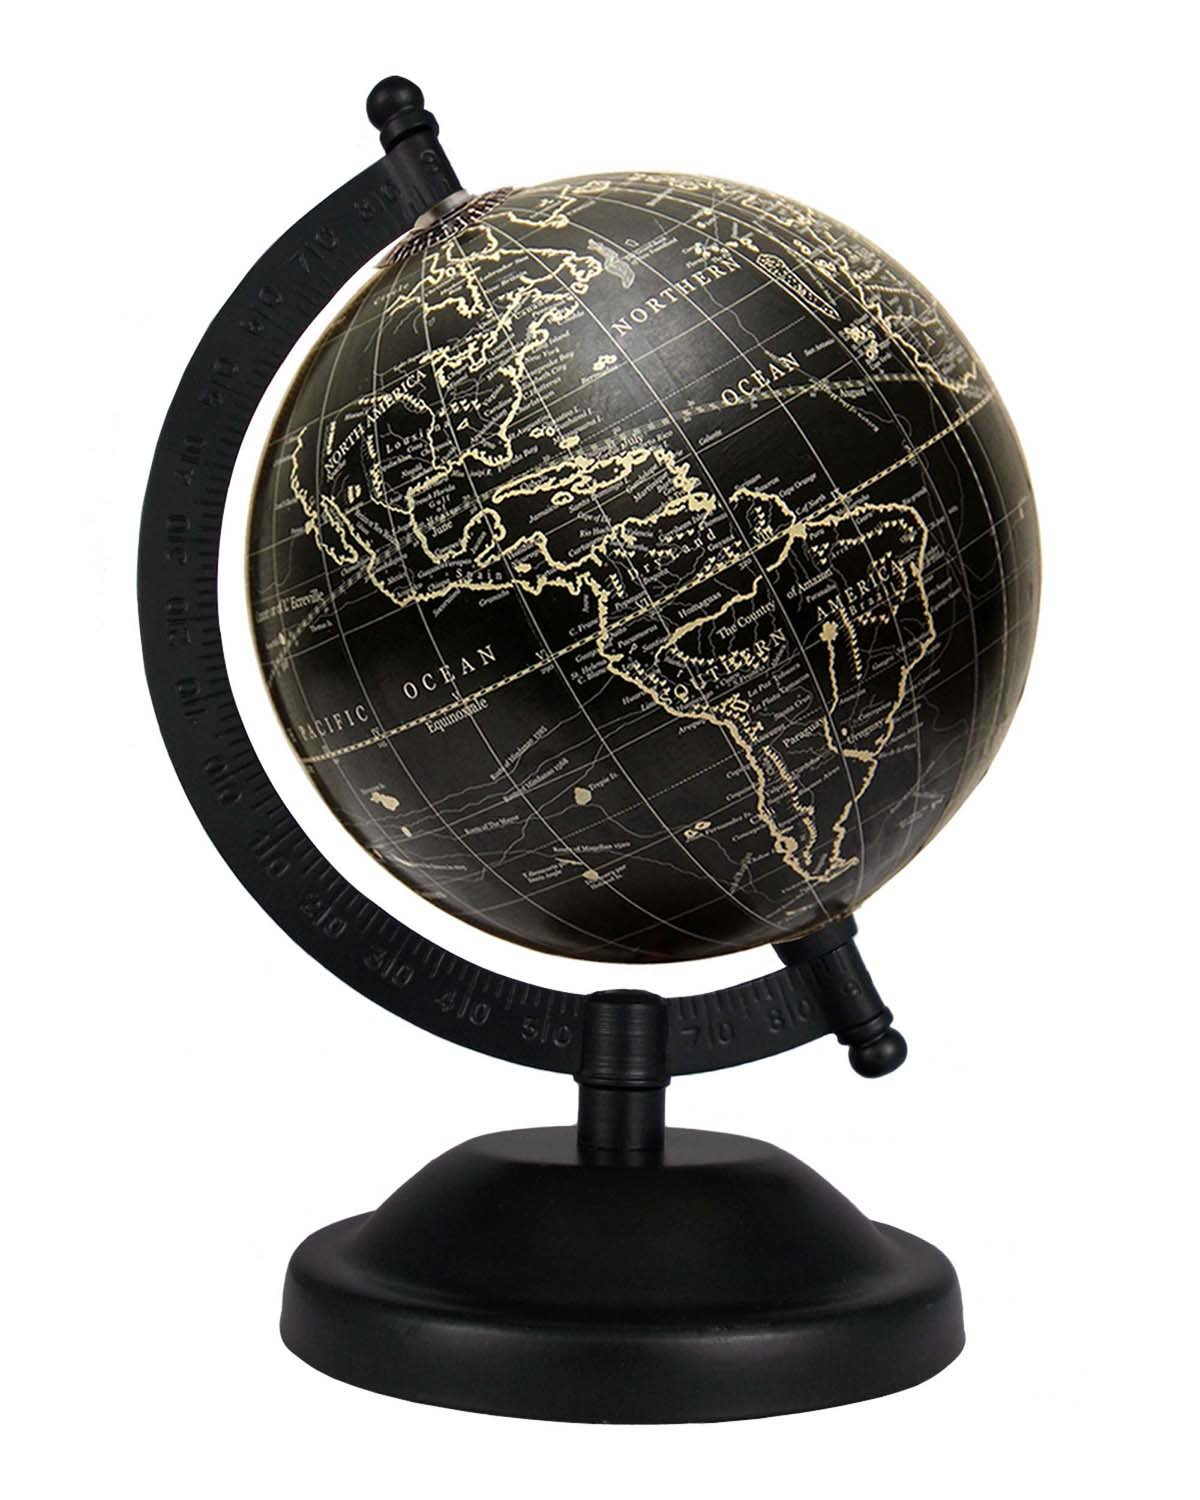 Rotating Black Globe 5 Inches Indian Handmade Geographical Table Top Gift